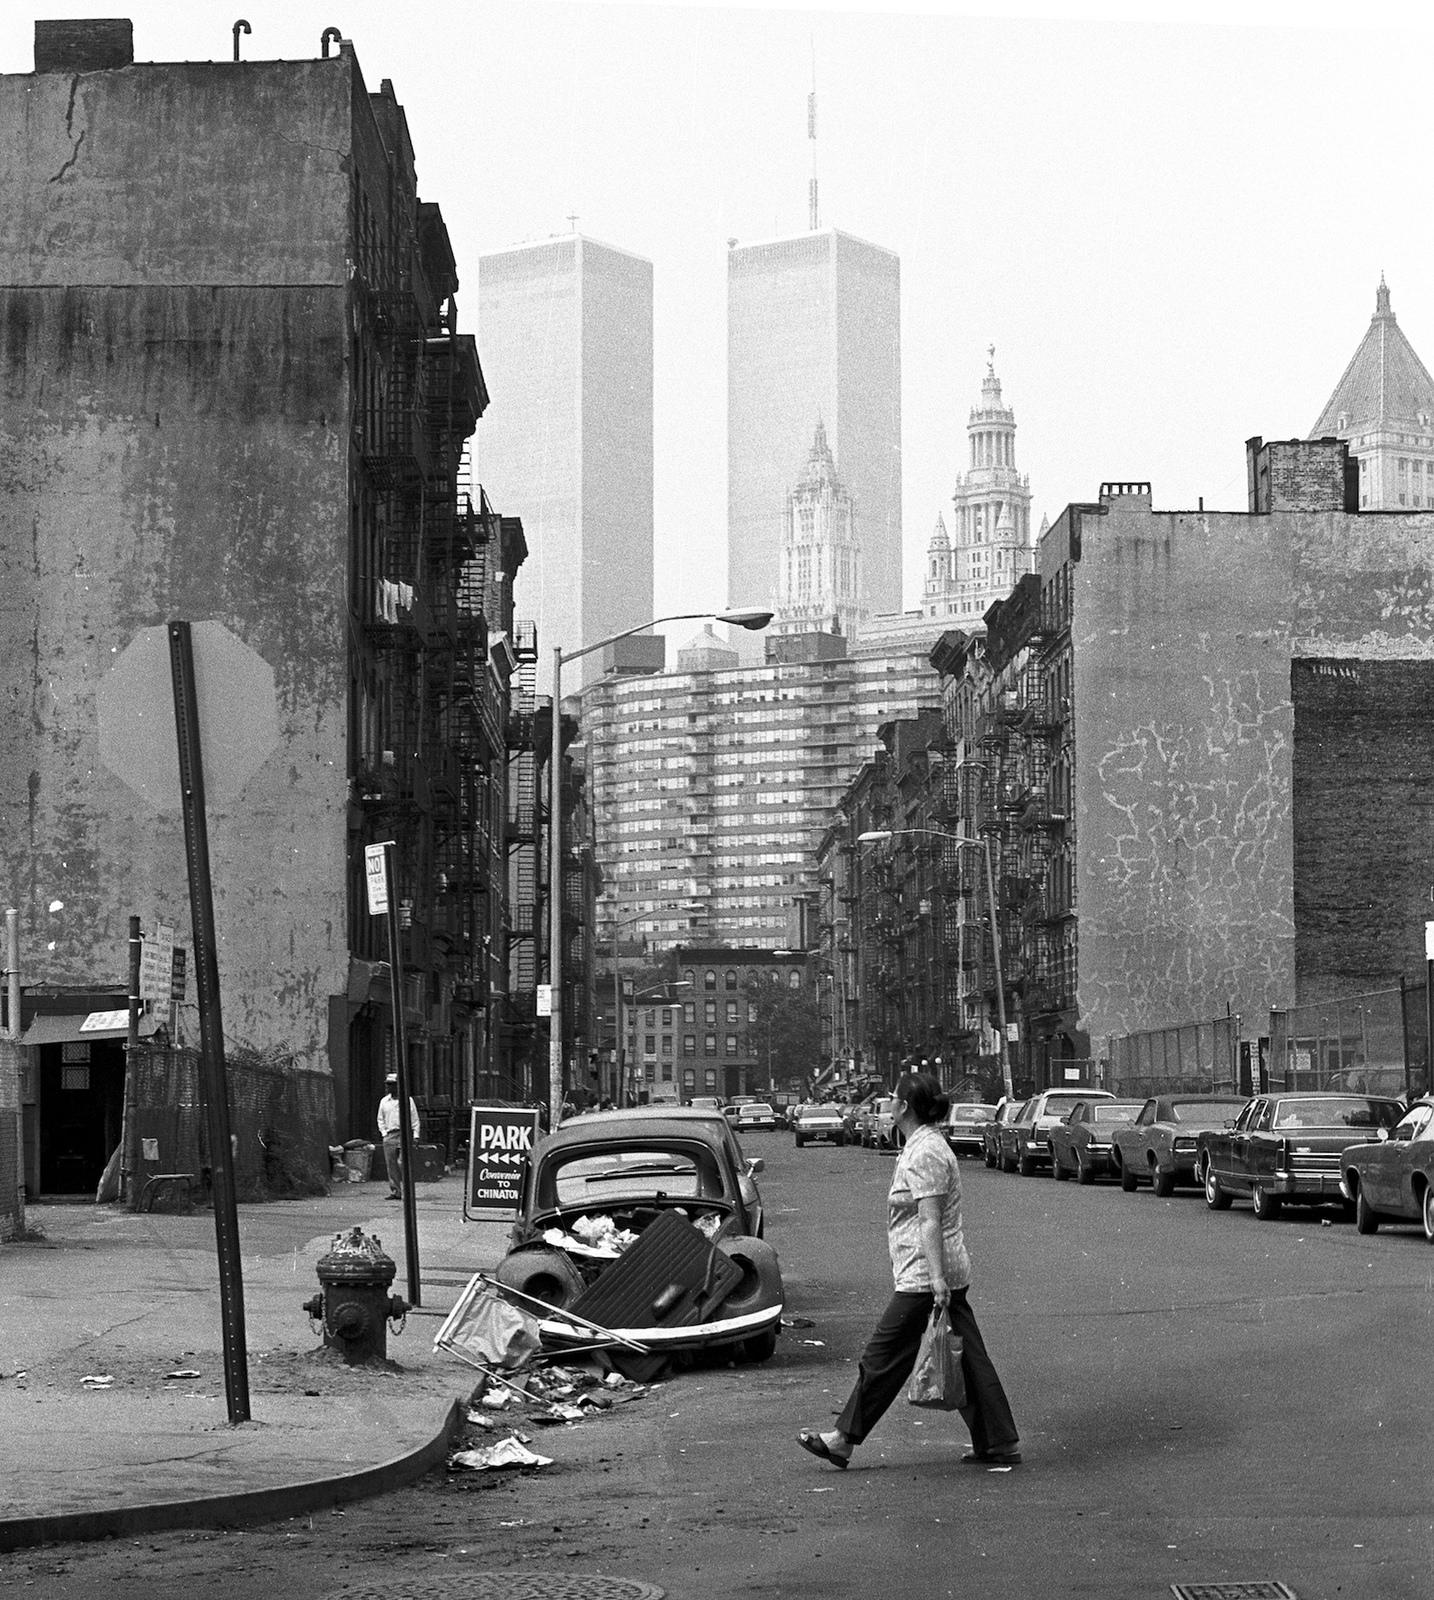 The World Trade Center hovers over unrestored 19th century tenements. Litter fills the street and a stripped Volkswagen Beetle is illegally parked at a fire hydrant. New York. June 1979.